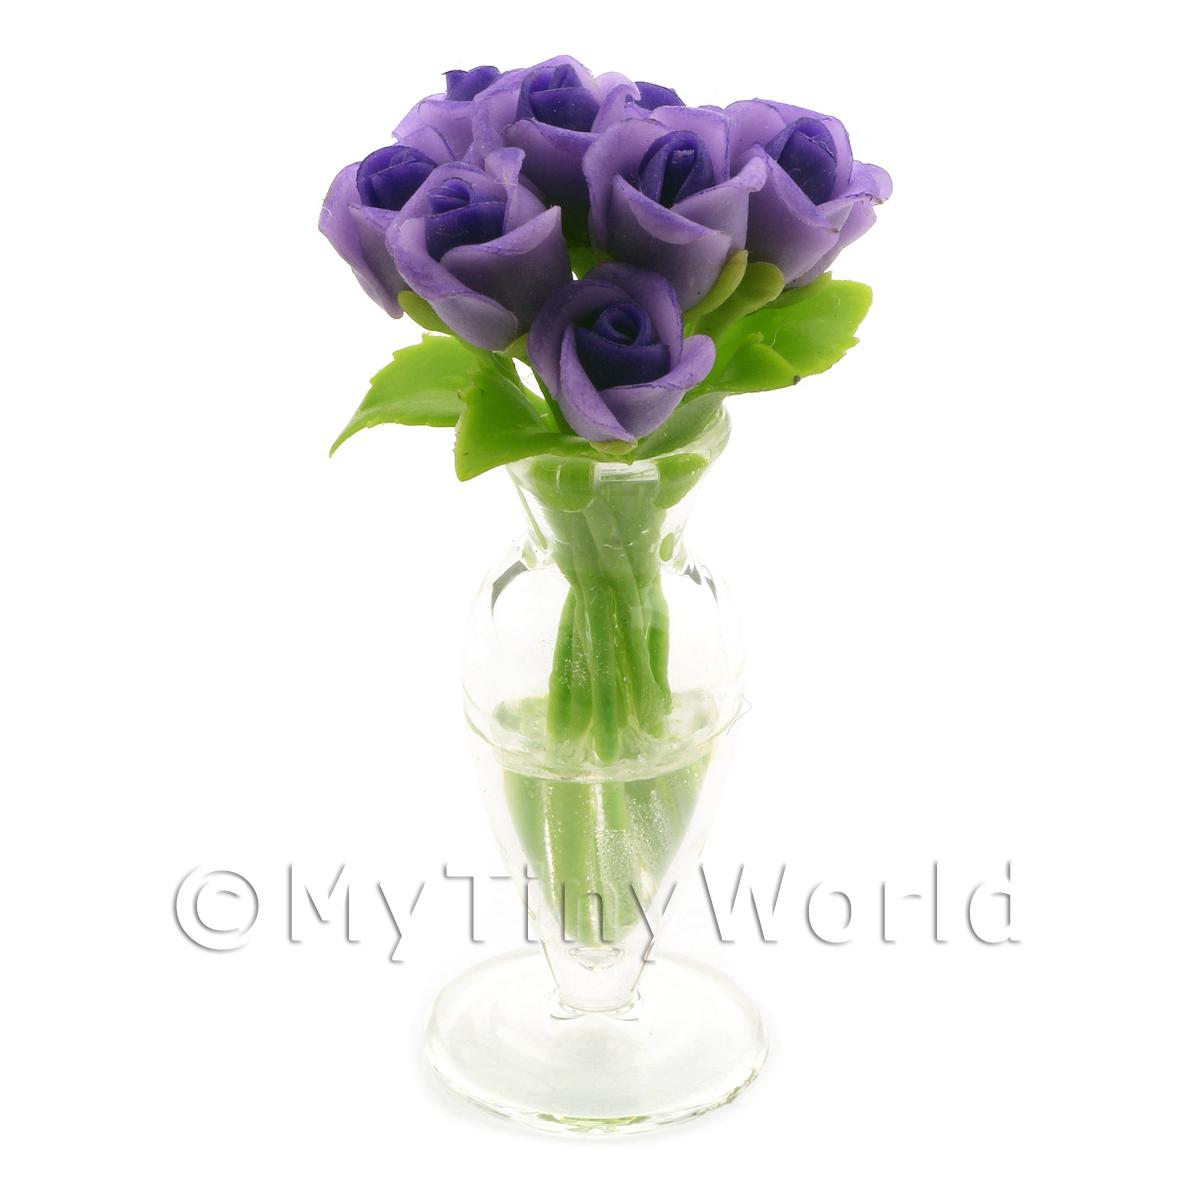 9 Miniature Violet   Purple Roses in a Glass Vase